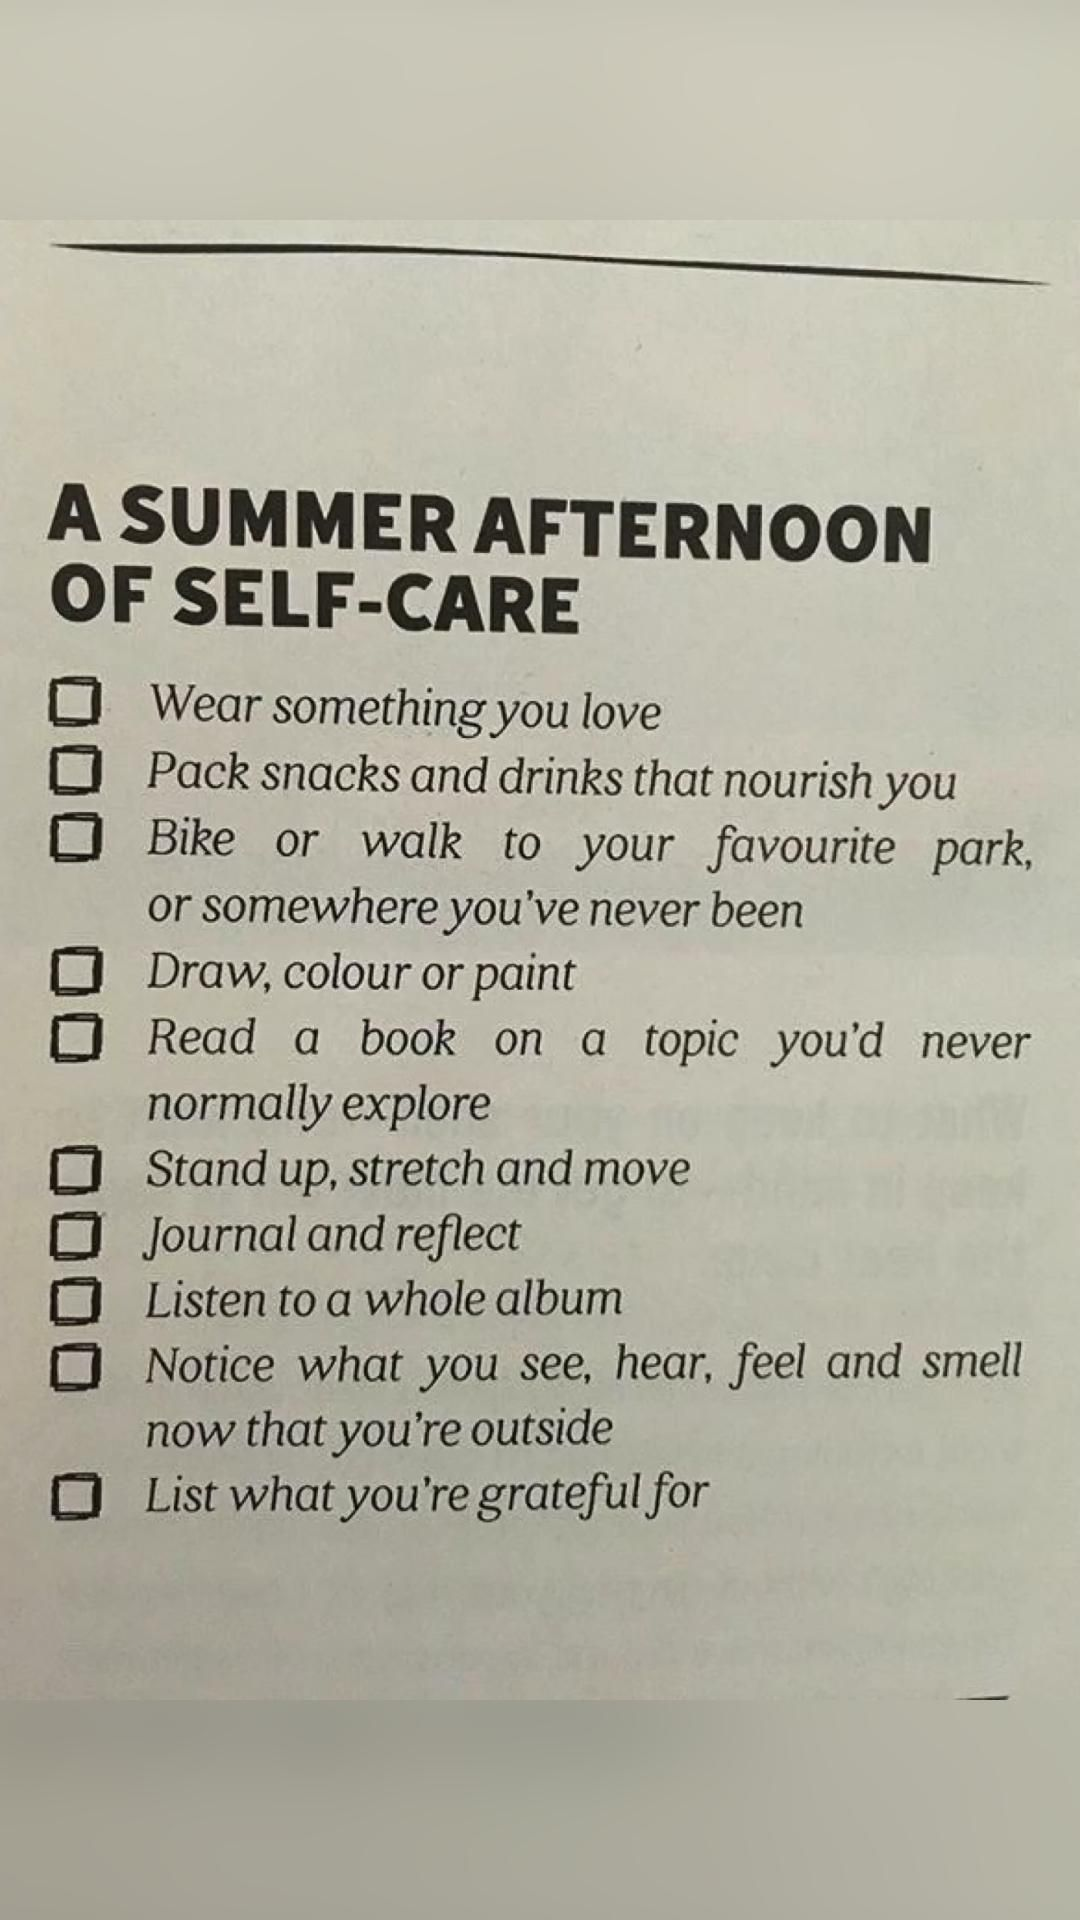 a summer afternoon of self-care